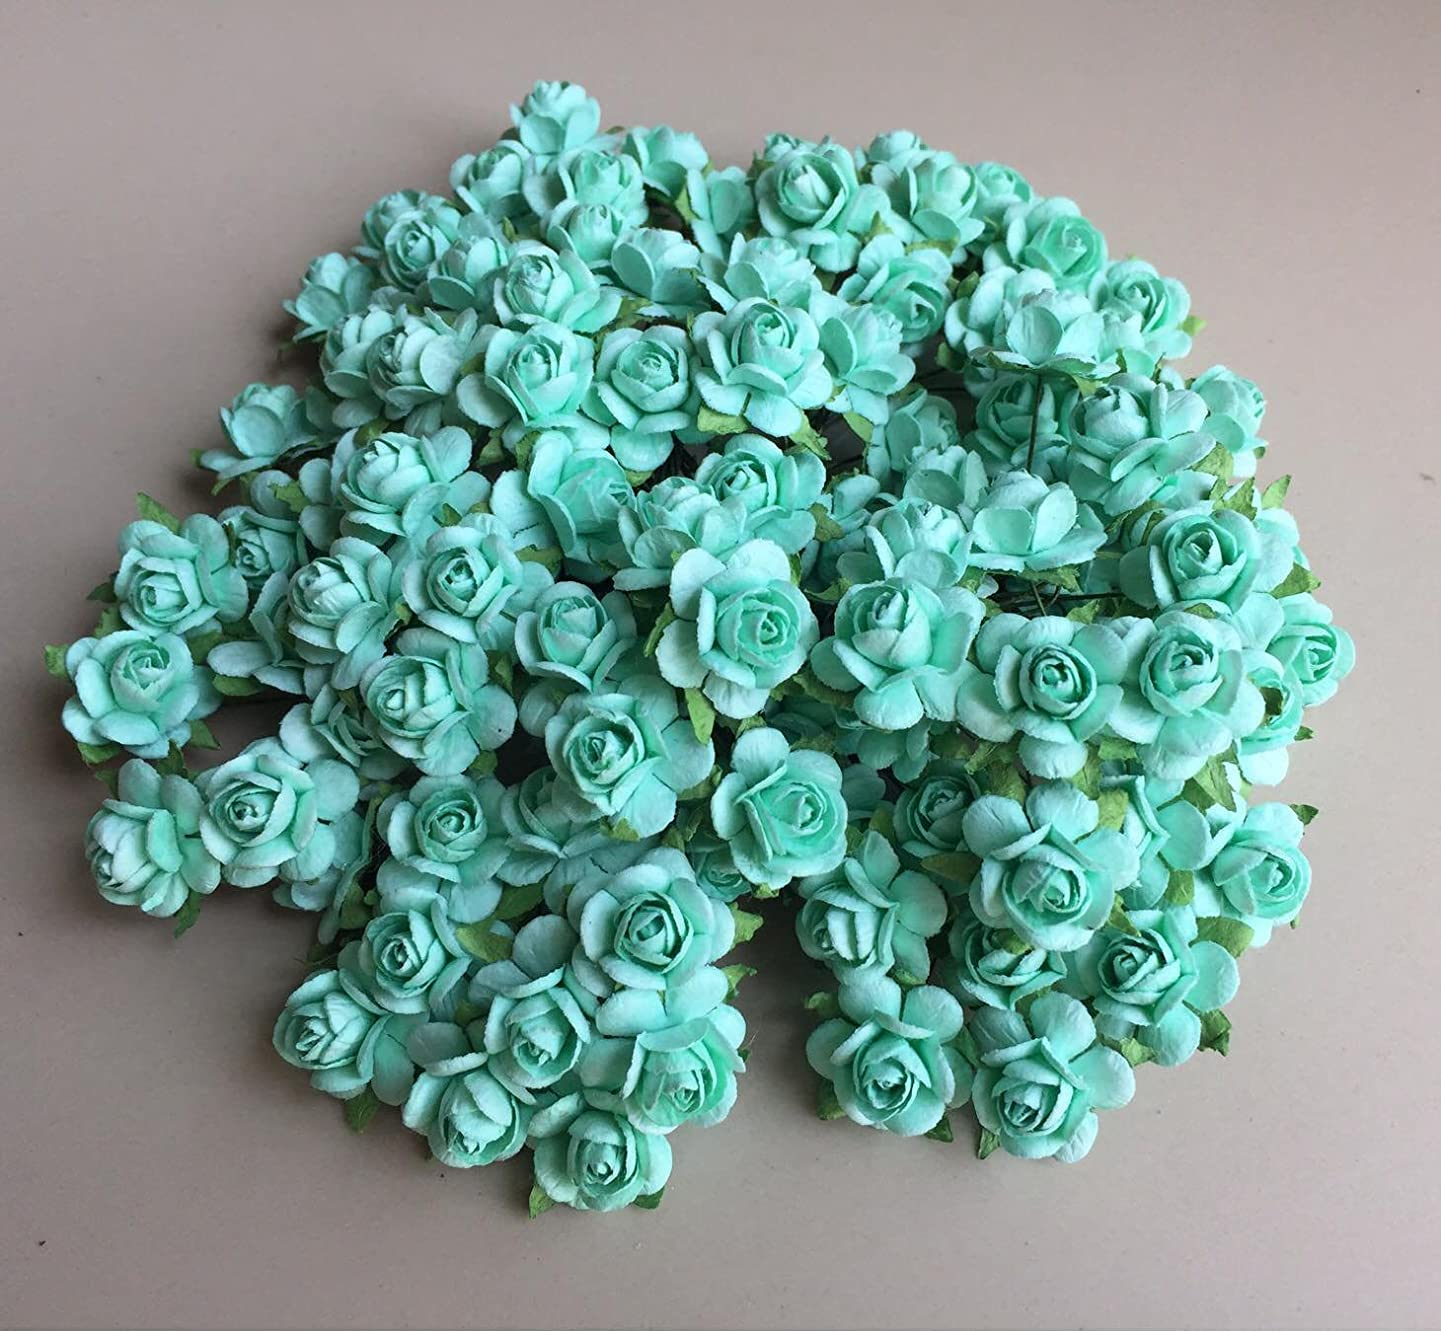 100 pcs mini Rose Green Color Wedding Flower Rose Mulberry Paper scrapbooking wedding dollhouse supplies card Flower 15mm By' Thai decorated